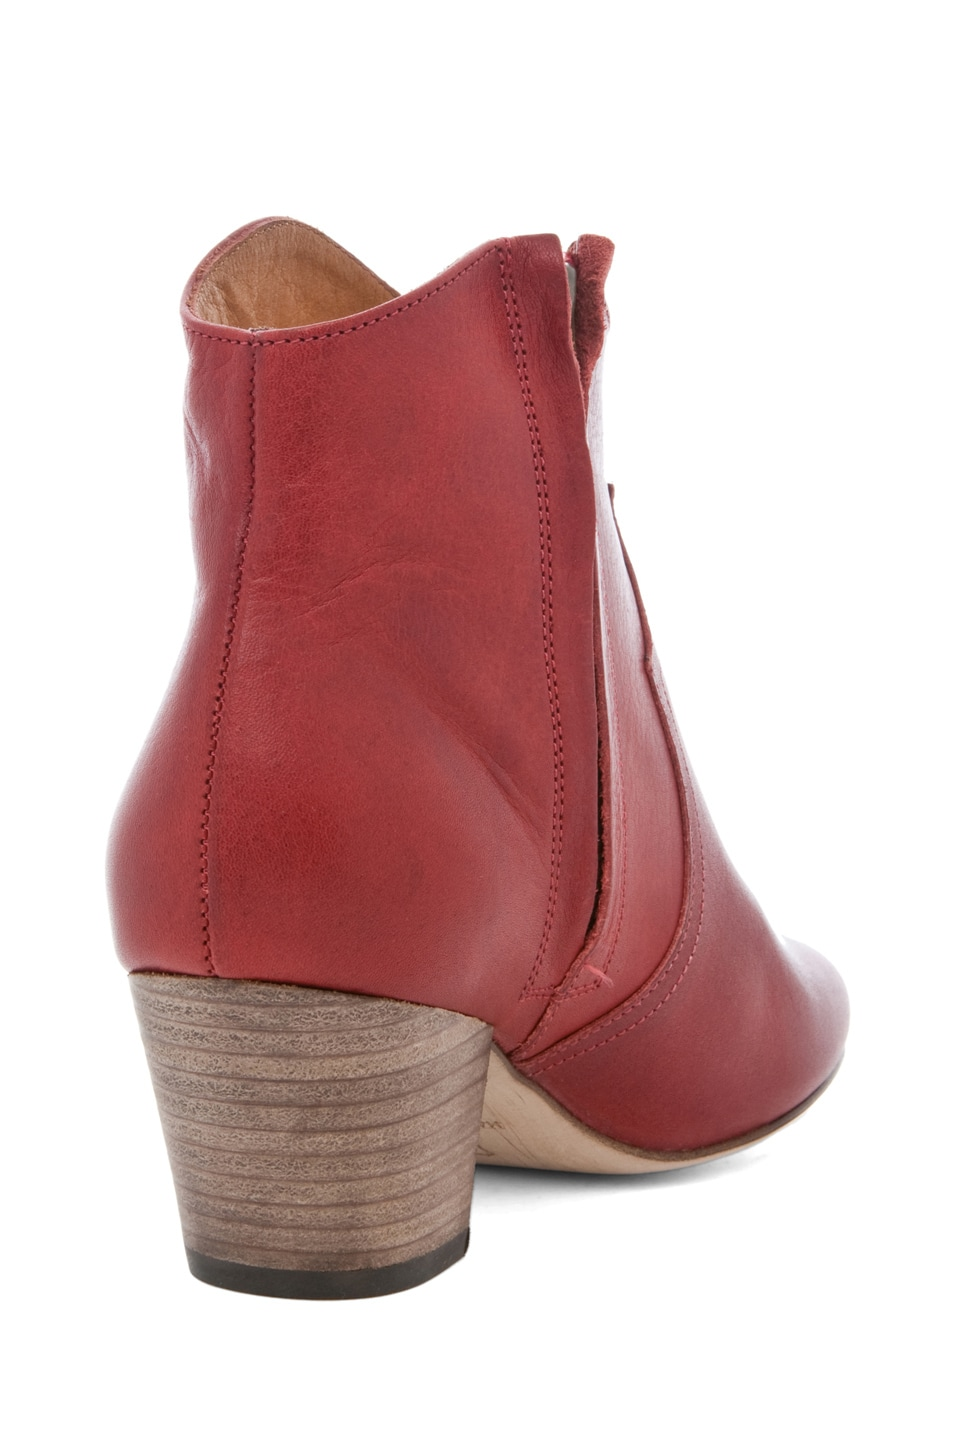 Image 3 of Isabel Marant Dicker Leather Bootie in Bordeaux